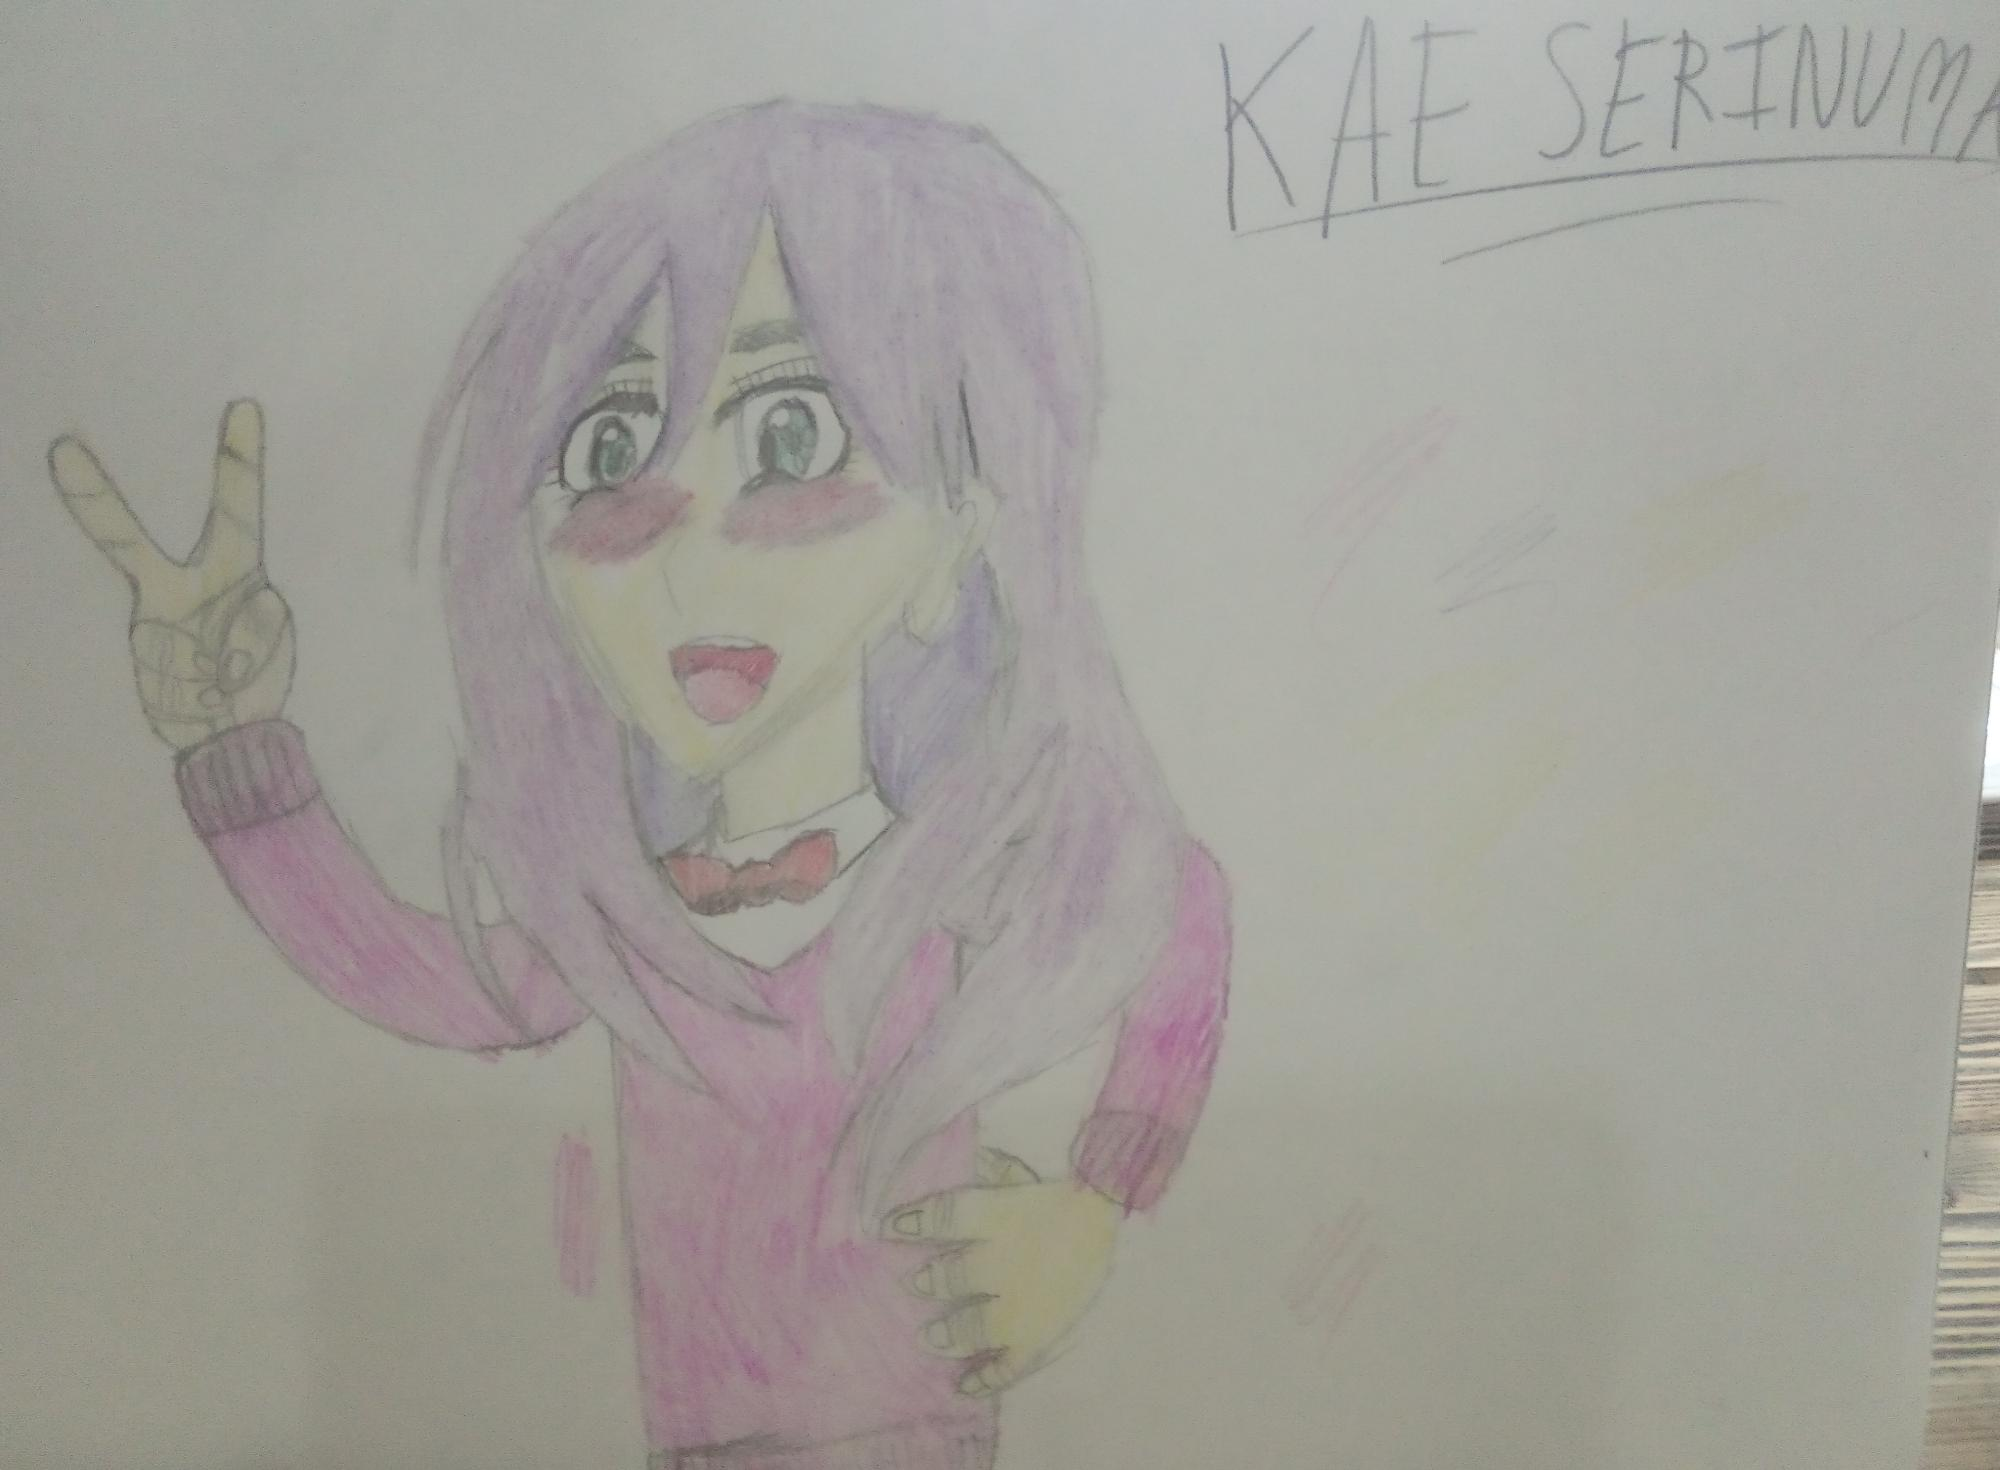 Kae Serinuma from 'kiss him not me' - What do you think? My first ever anime drawing.